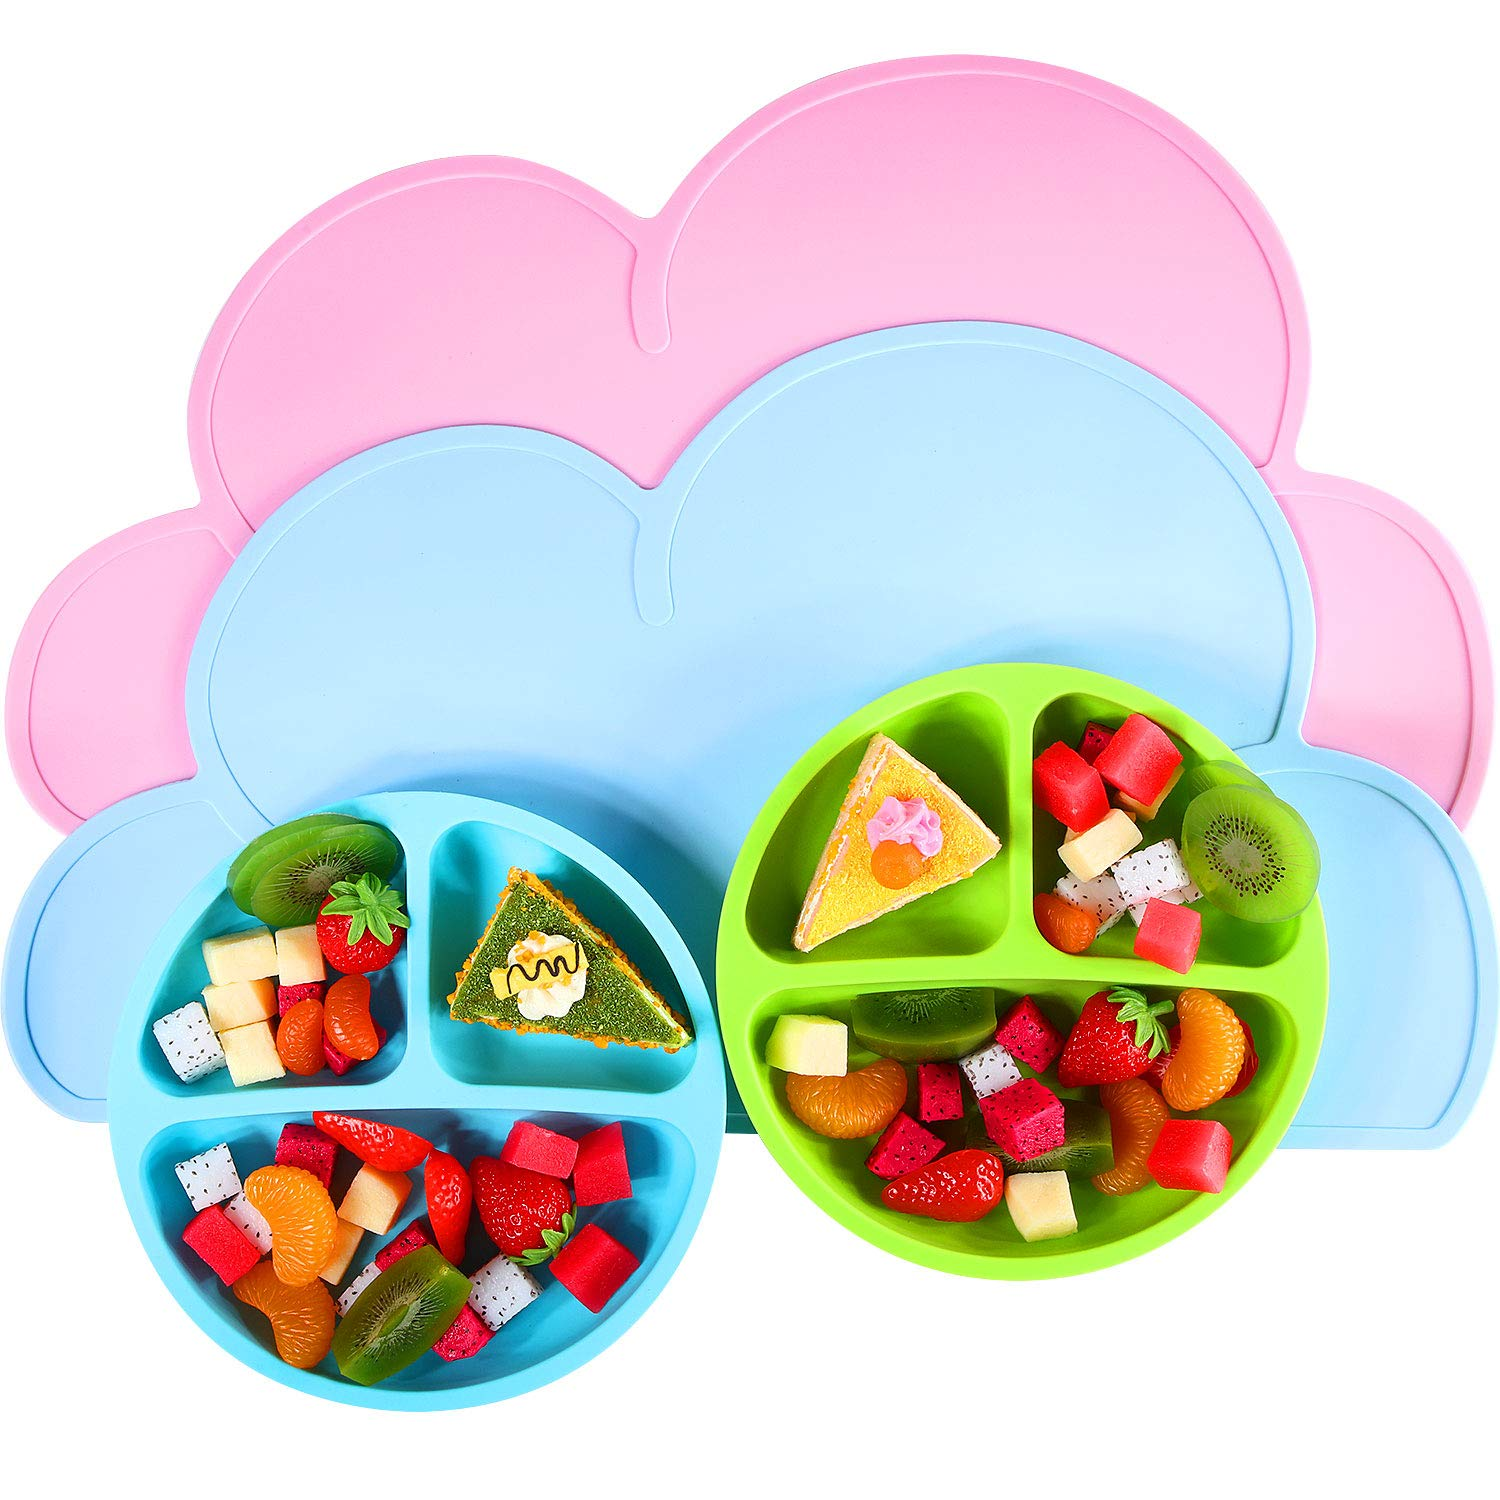 4 Pieces Baby Placemat and Silicone Plates Set Divided Baby Plates Non-slip Portable Food Mat Reusable Cloud Placemats Silicone Meal Mat for Kids Toddlers